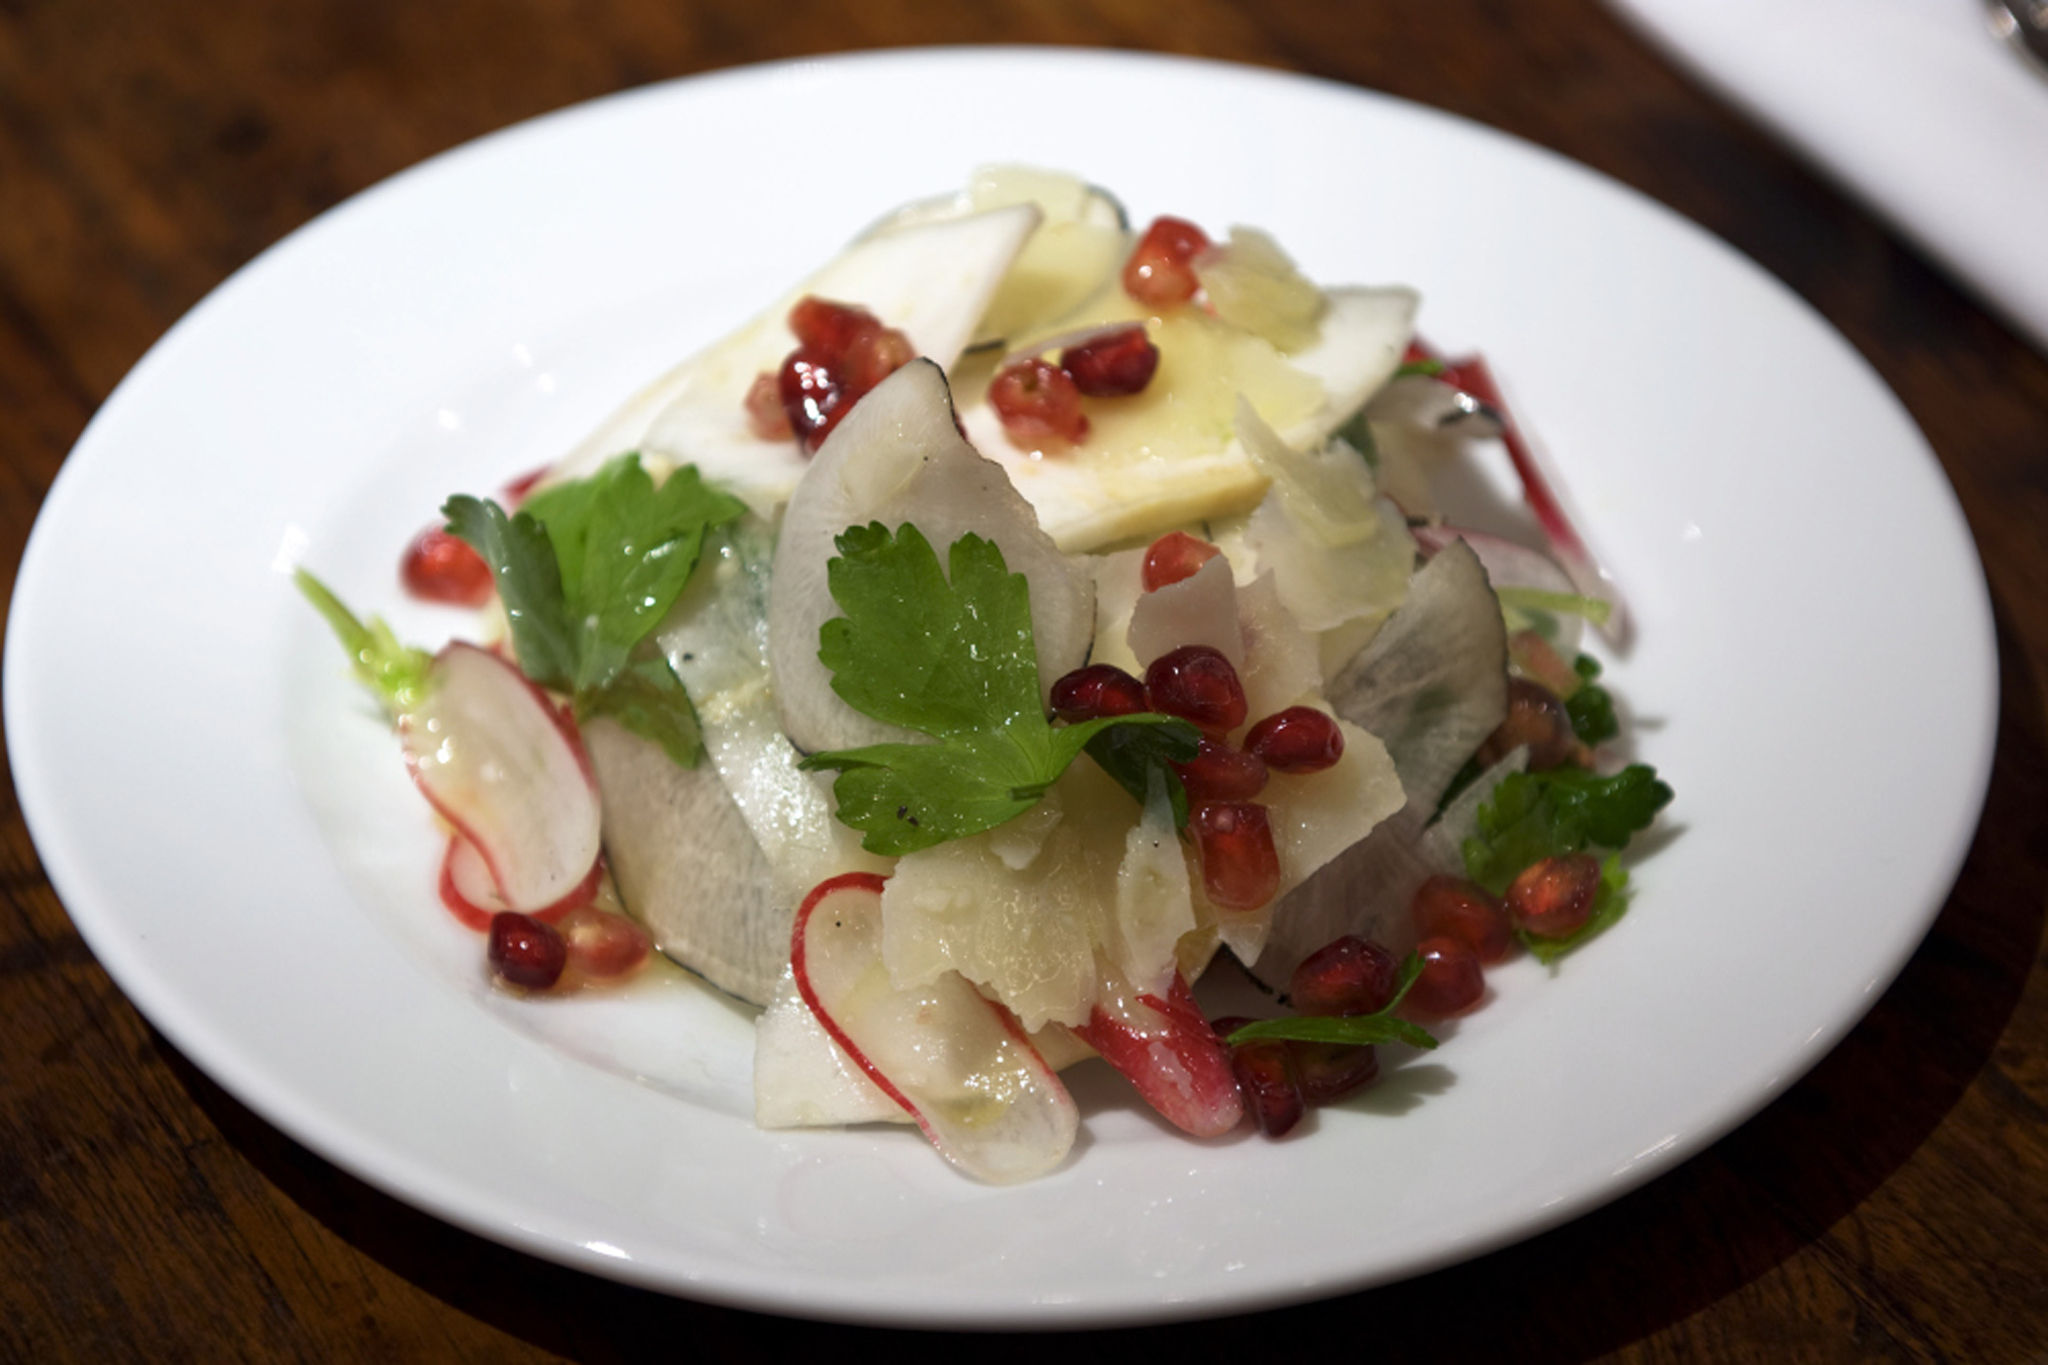 Radish, celeriac, and pomegranate salad at Bocca di Lupo